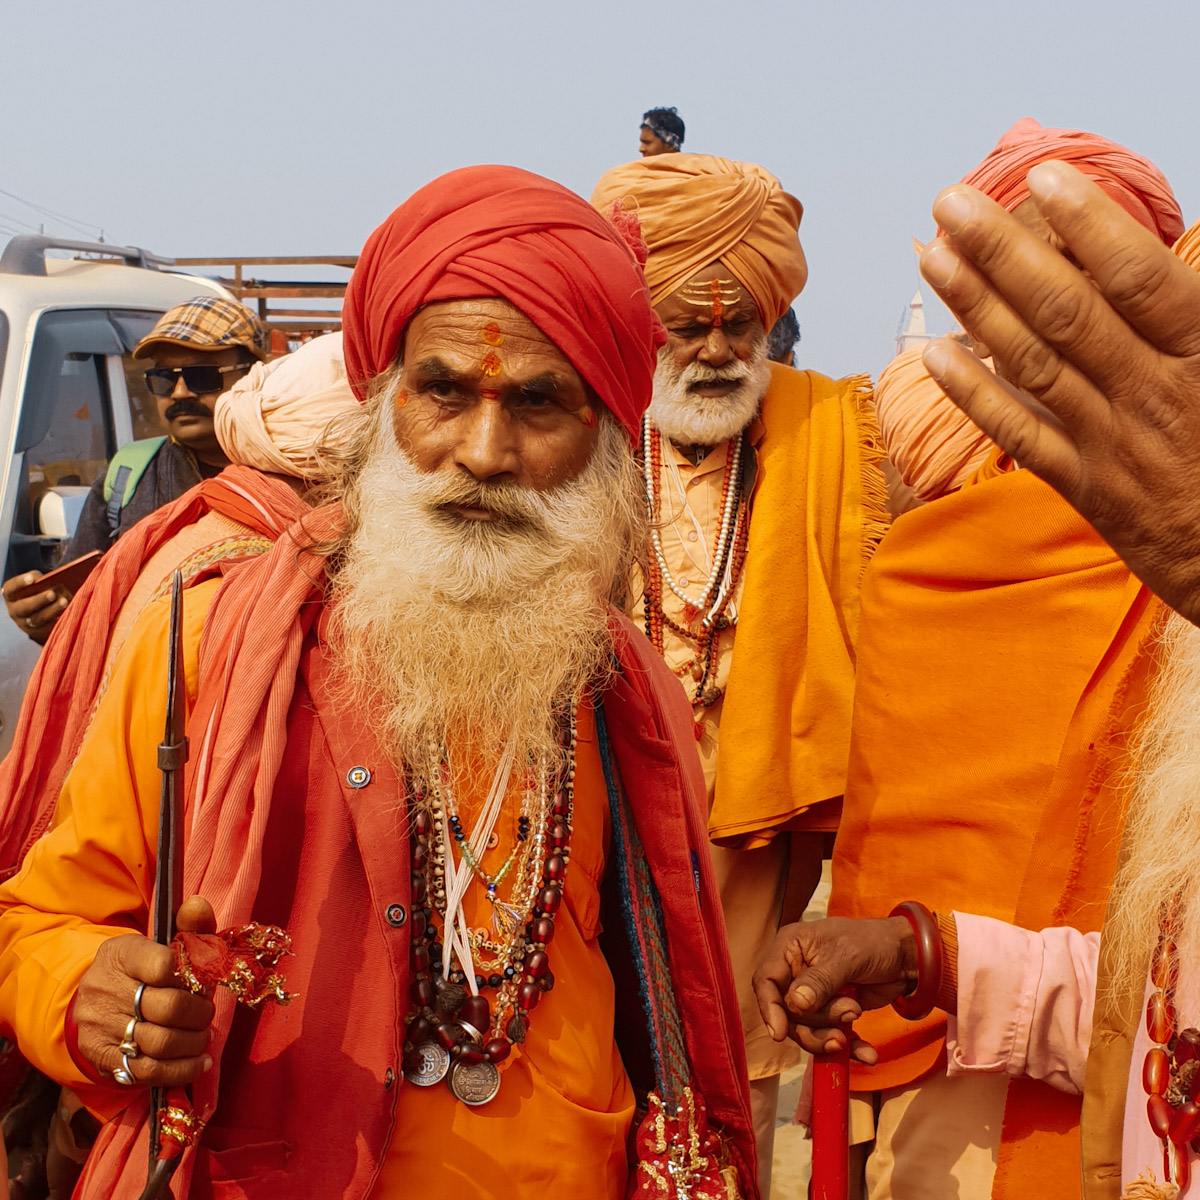 sadhu at the kumbh